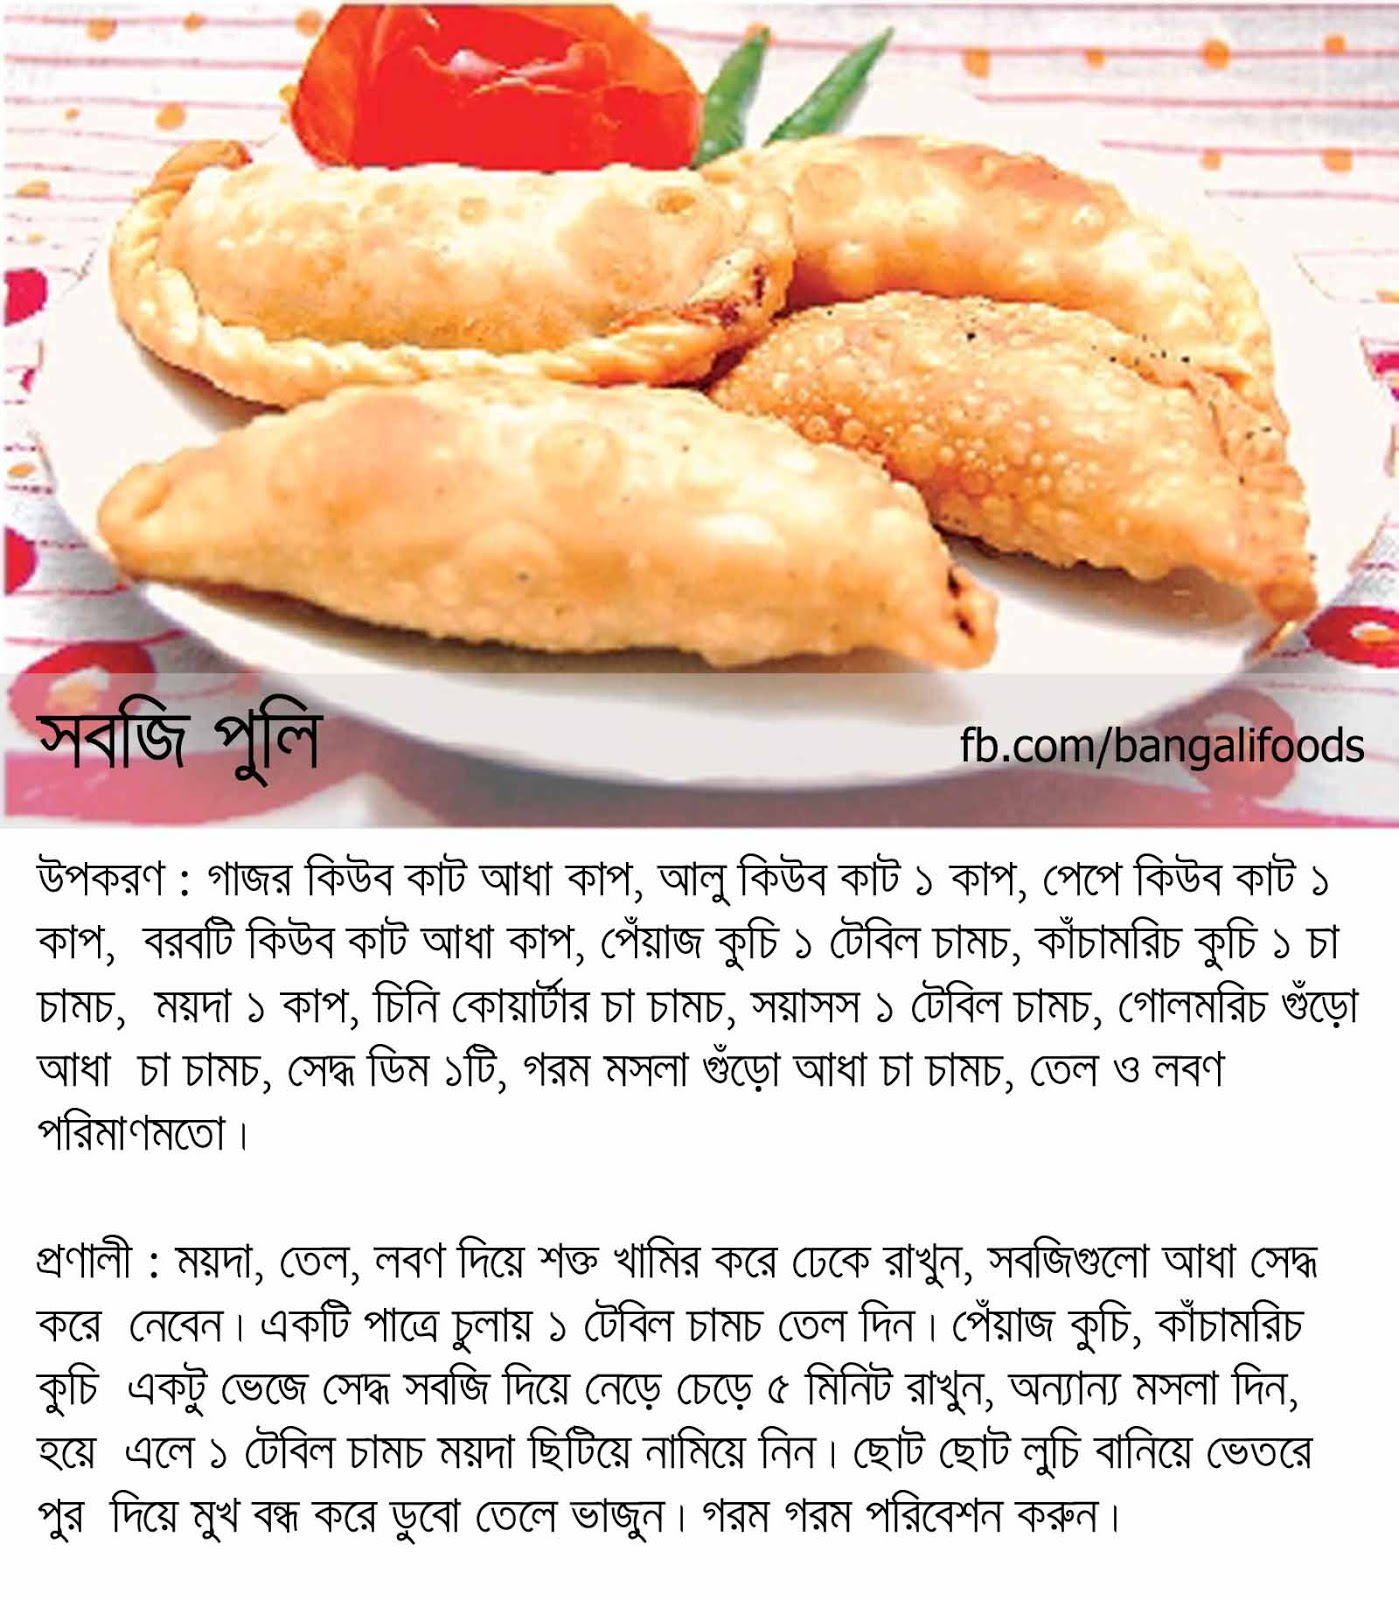 Bangali foods snack food recipes in bengali bengali recipe sobji puli forumfinder Choice Image